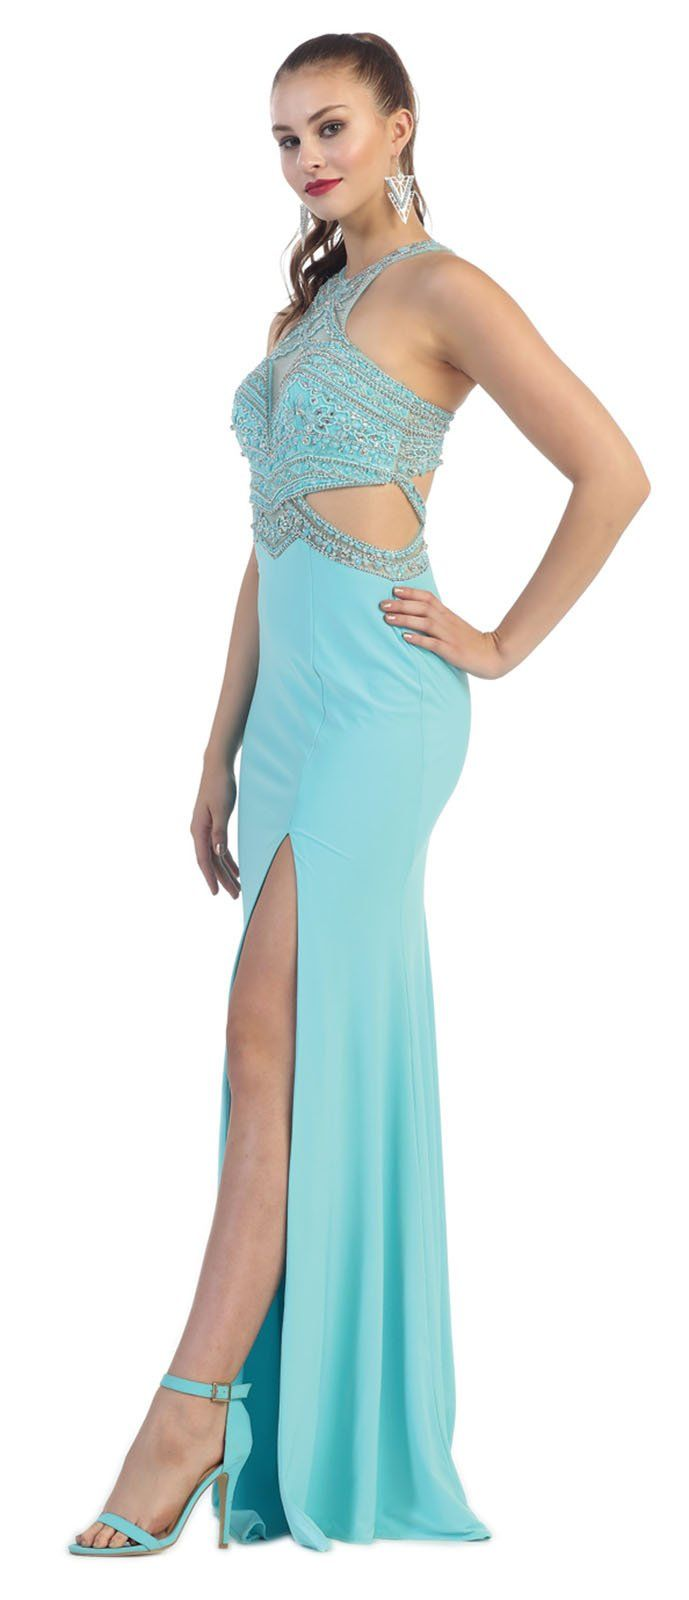 May Queen MQ7404 Stretchy Sexy Prom Dress (8, Aqua). Spot Clean. In ...